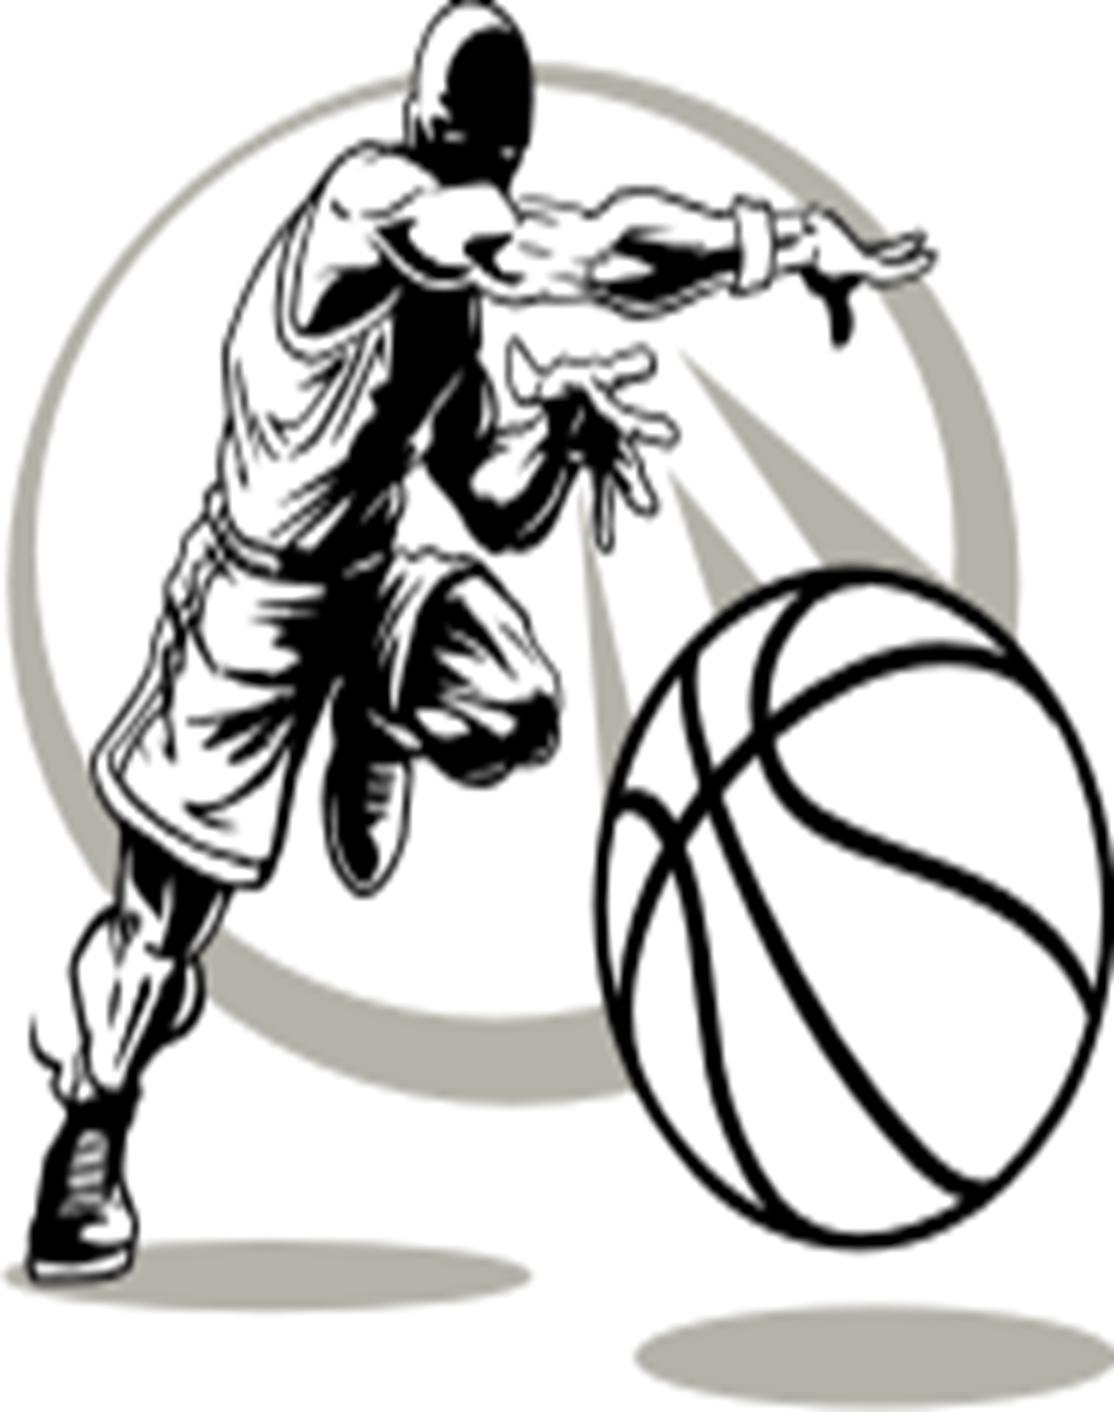 Free Basketball Team Cliparts, Download Free Clip Art, Free.